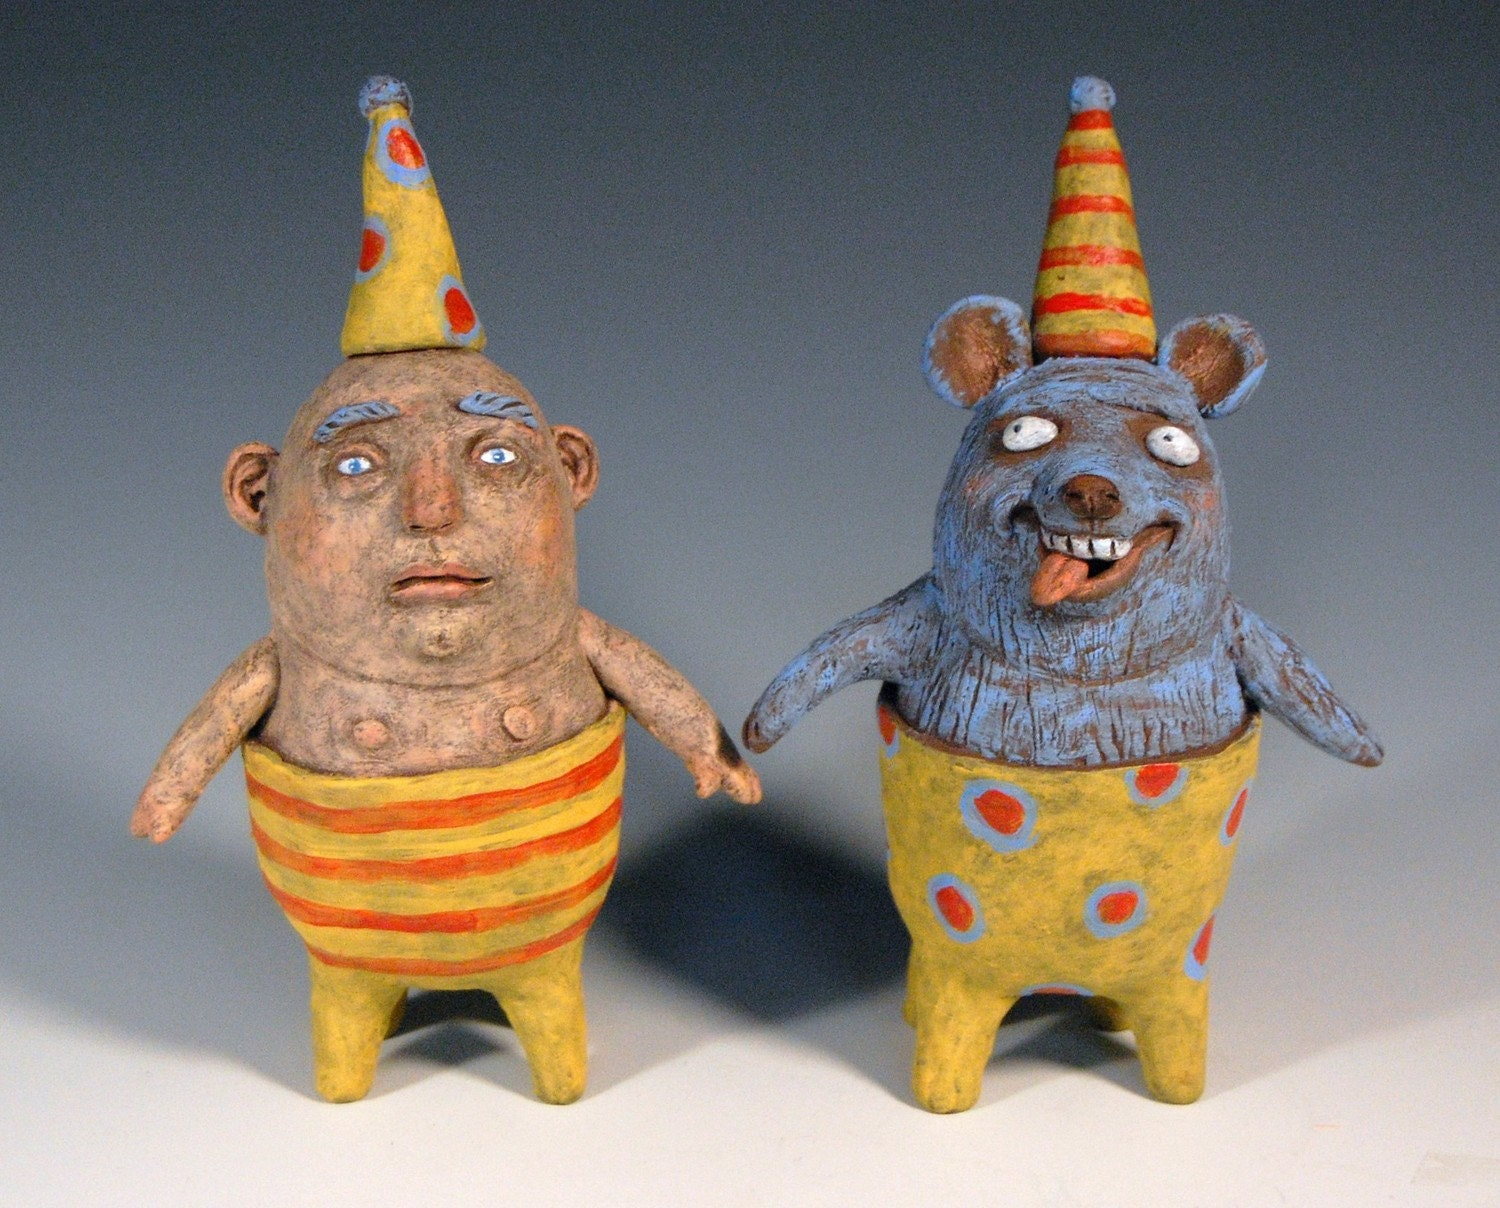 Boris And Lenny Decorative Salt And Pepper Shakers